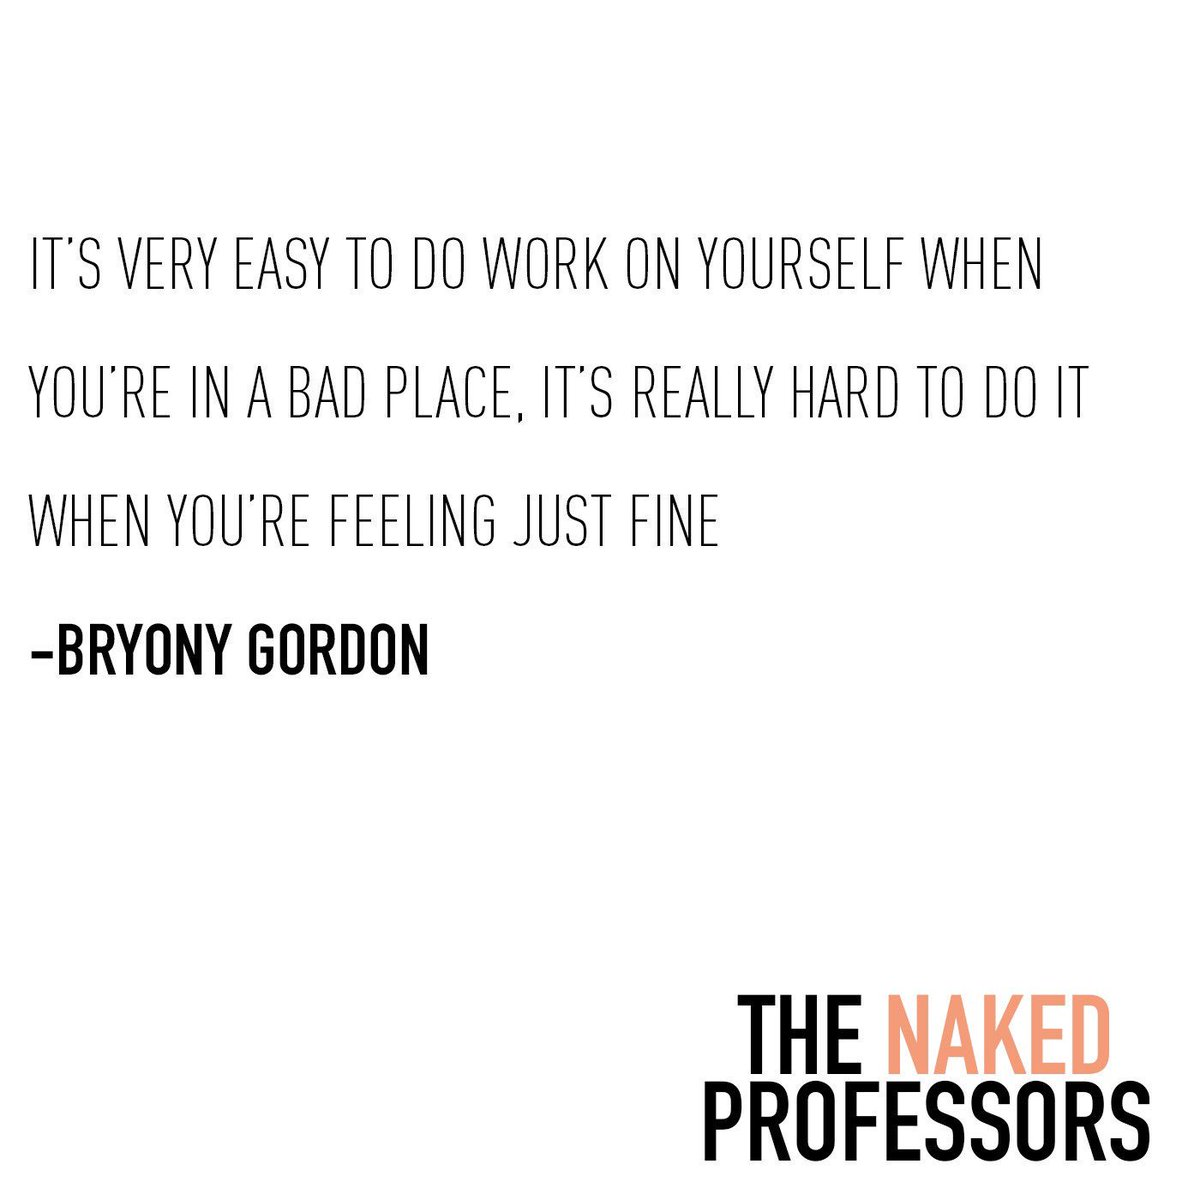 This week's incredible guest is @bryony_gordon check out the latest episode now on @acast @ApplePodcasts @SpotifyUK or wherever you get your podcasts from!